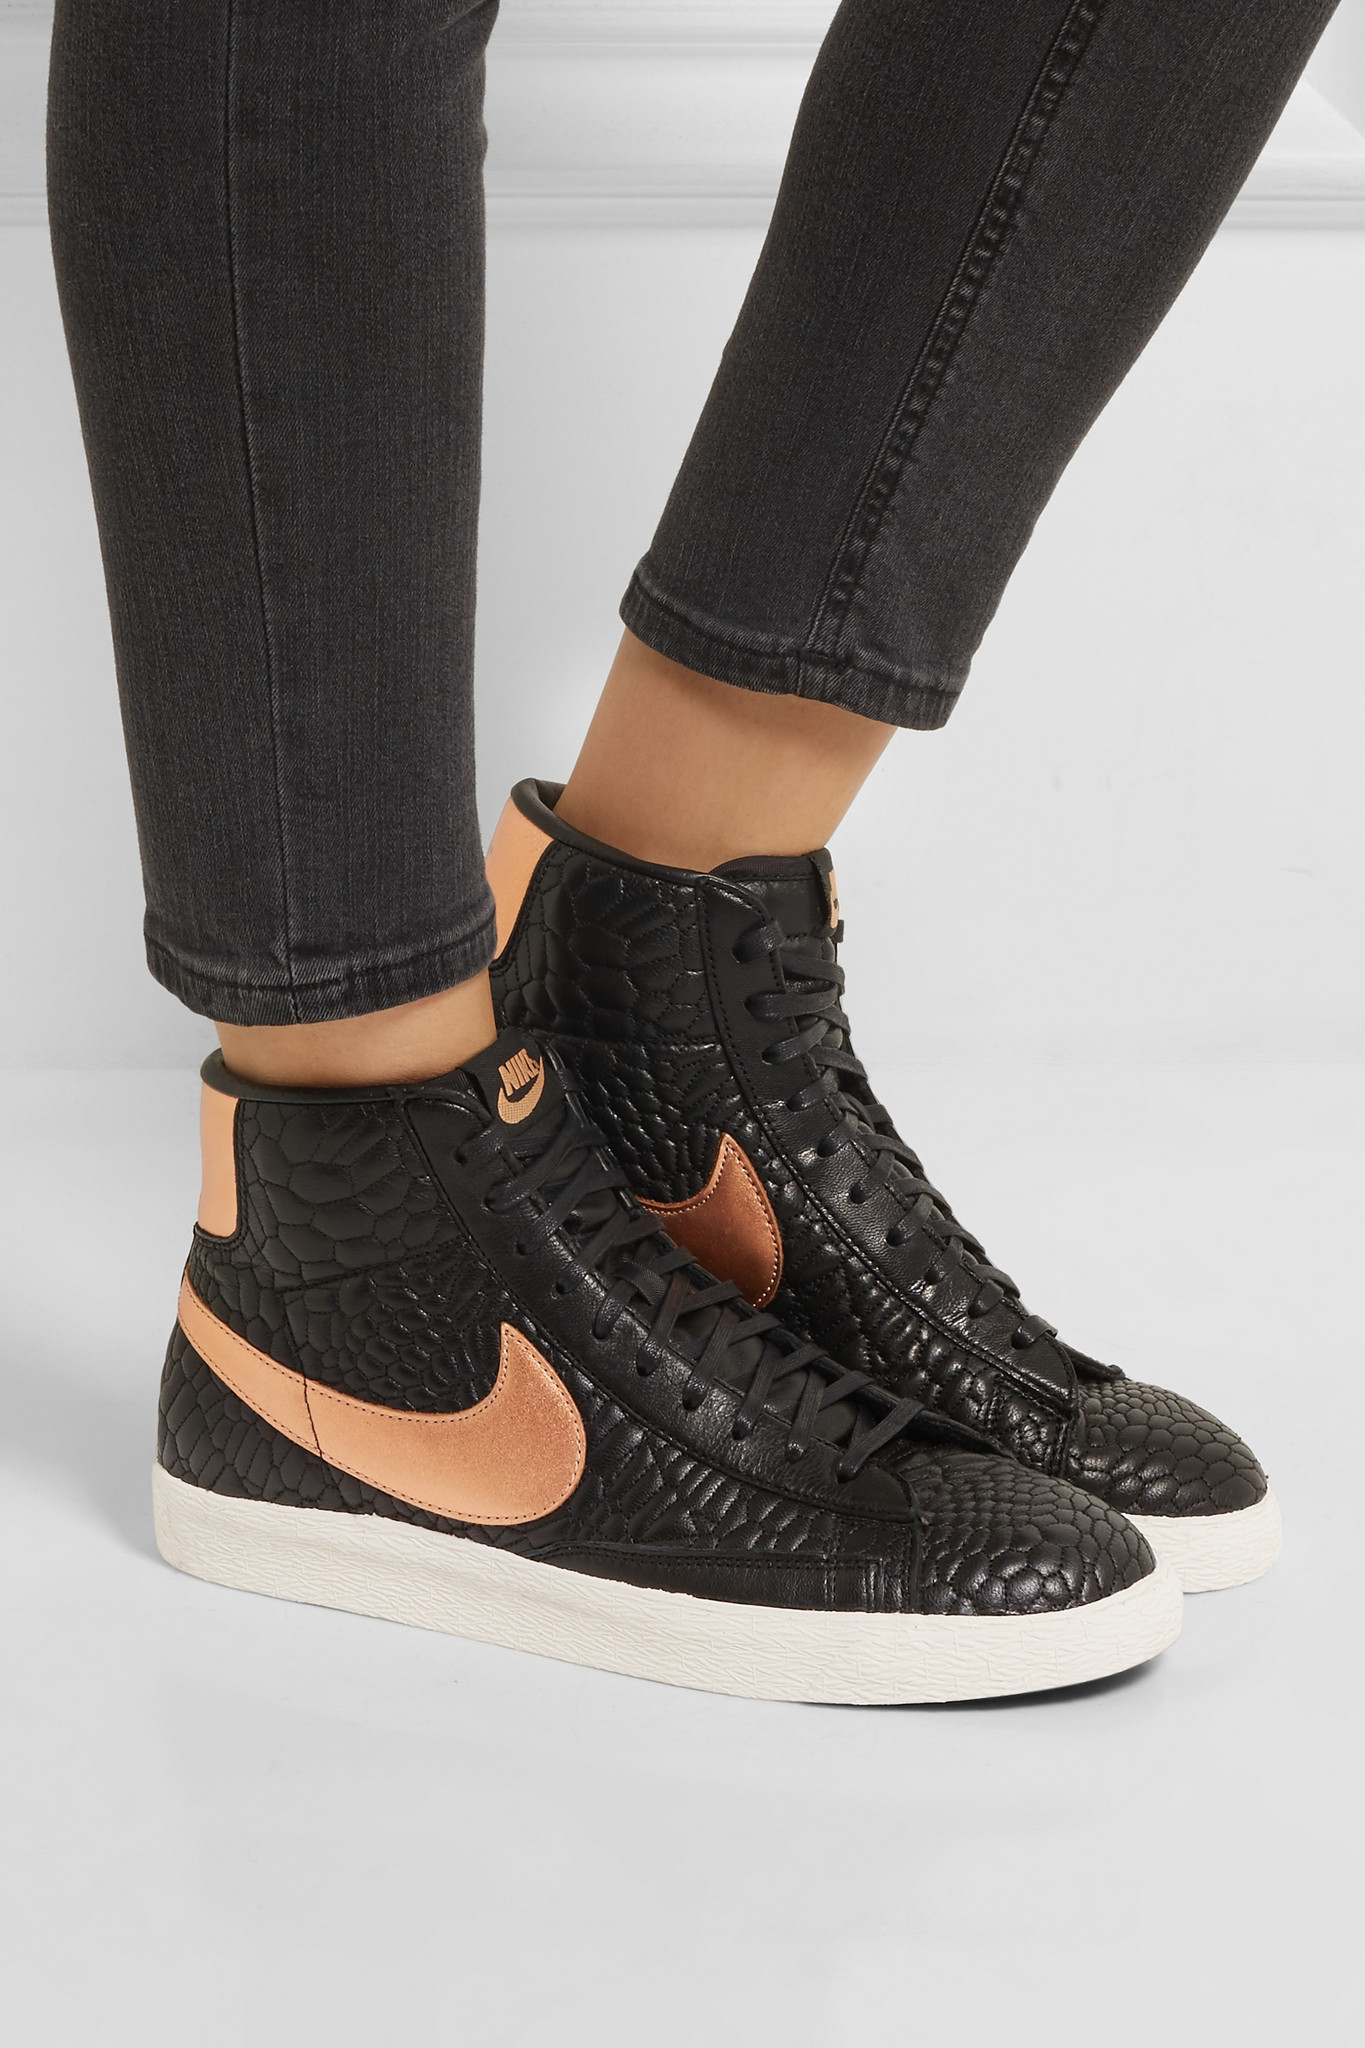 Nike - Blazer Croc-effect Leather High-top Sneakers ...